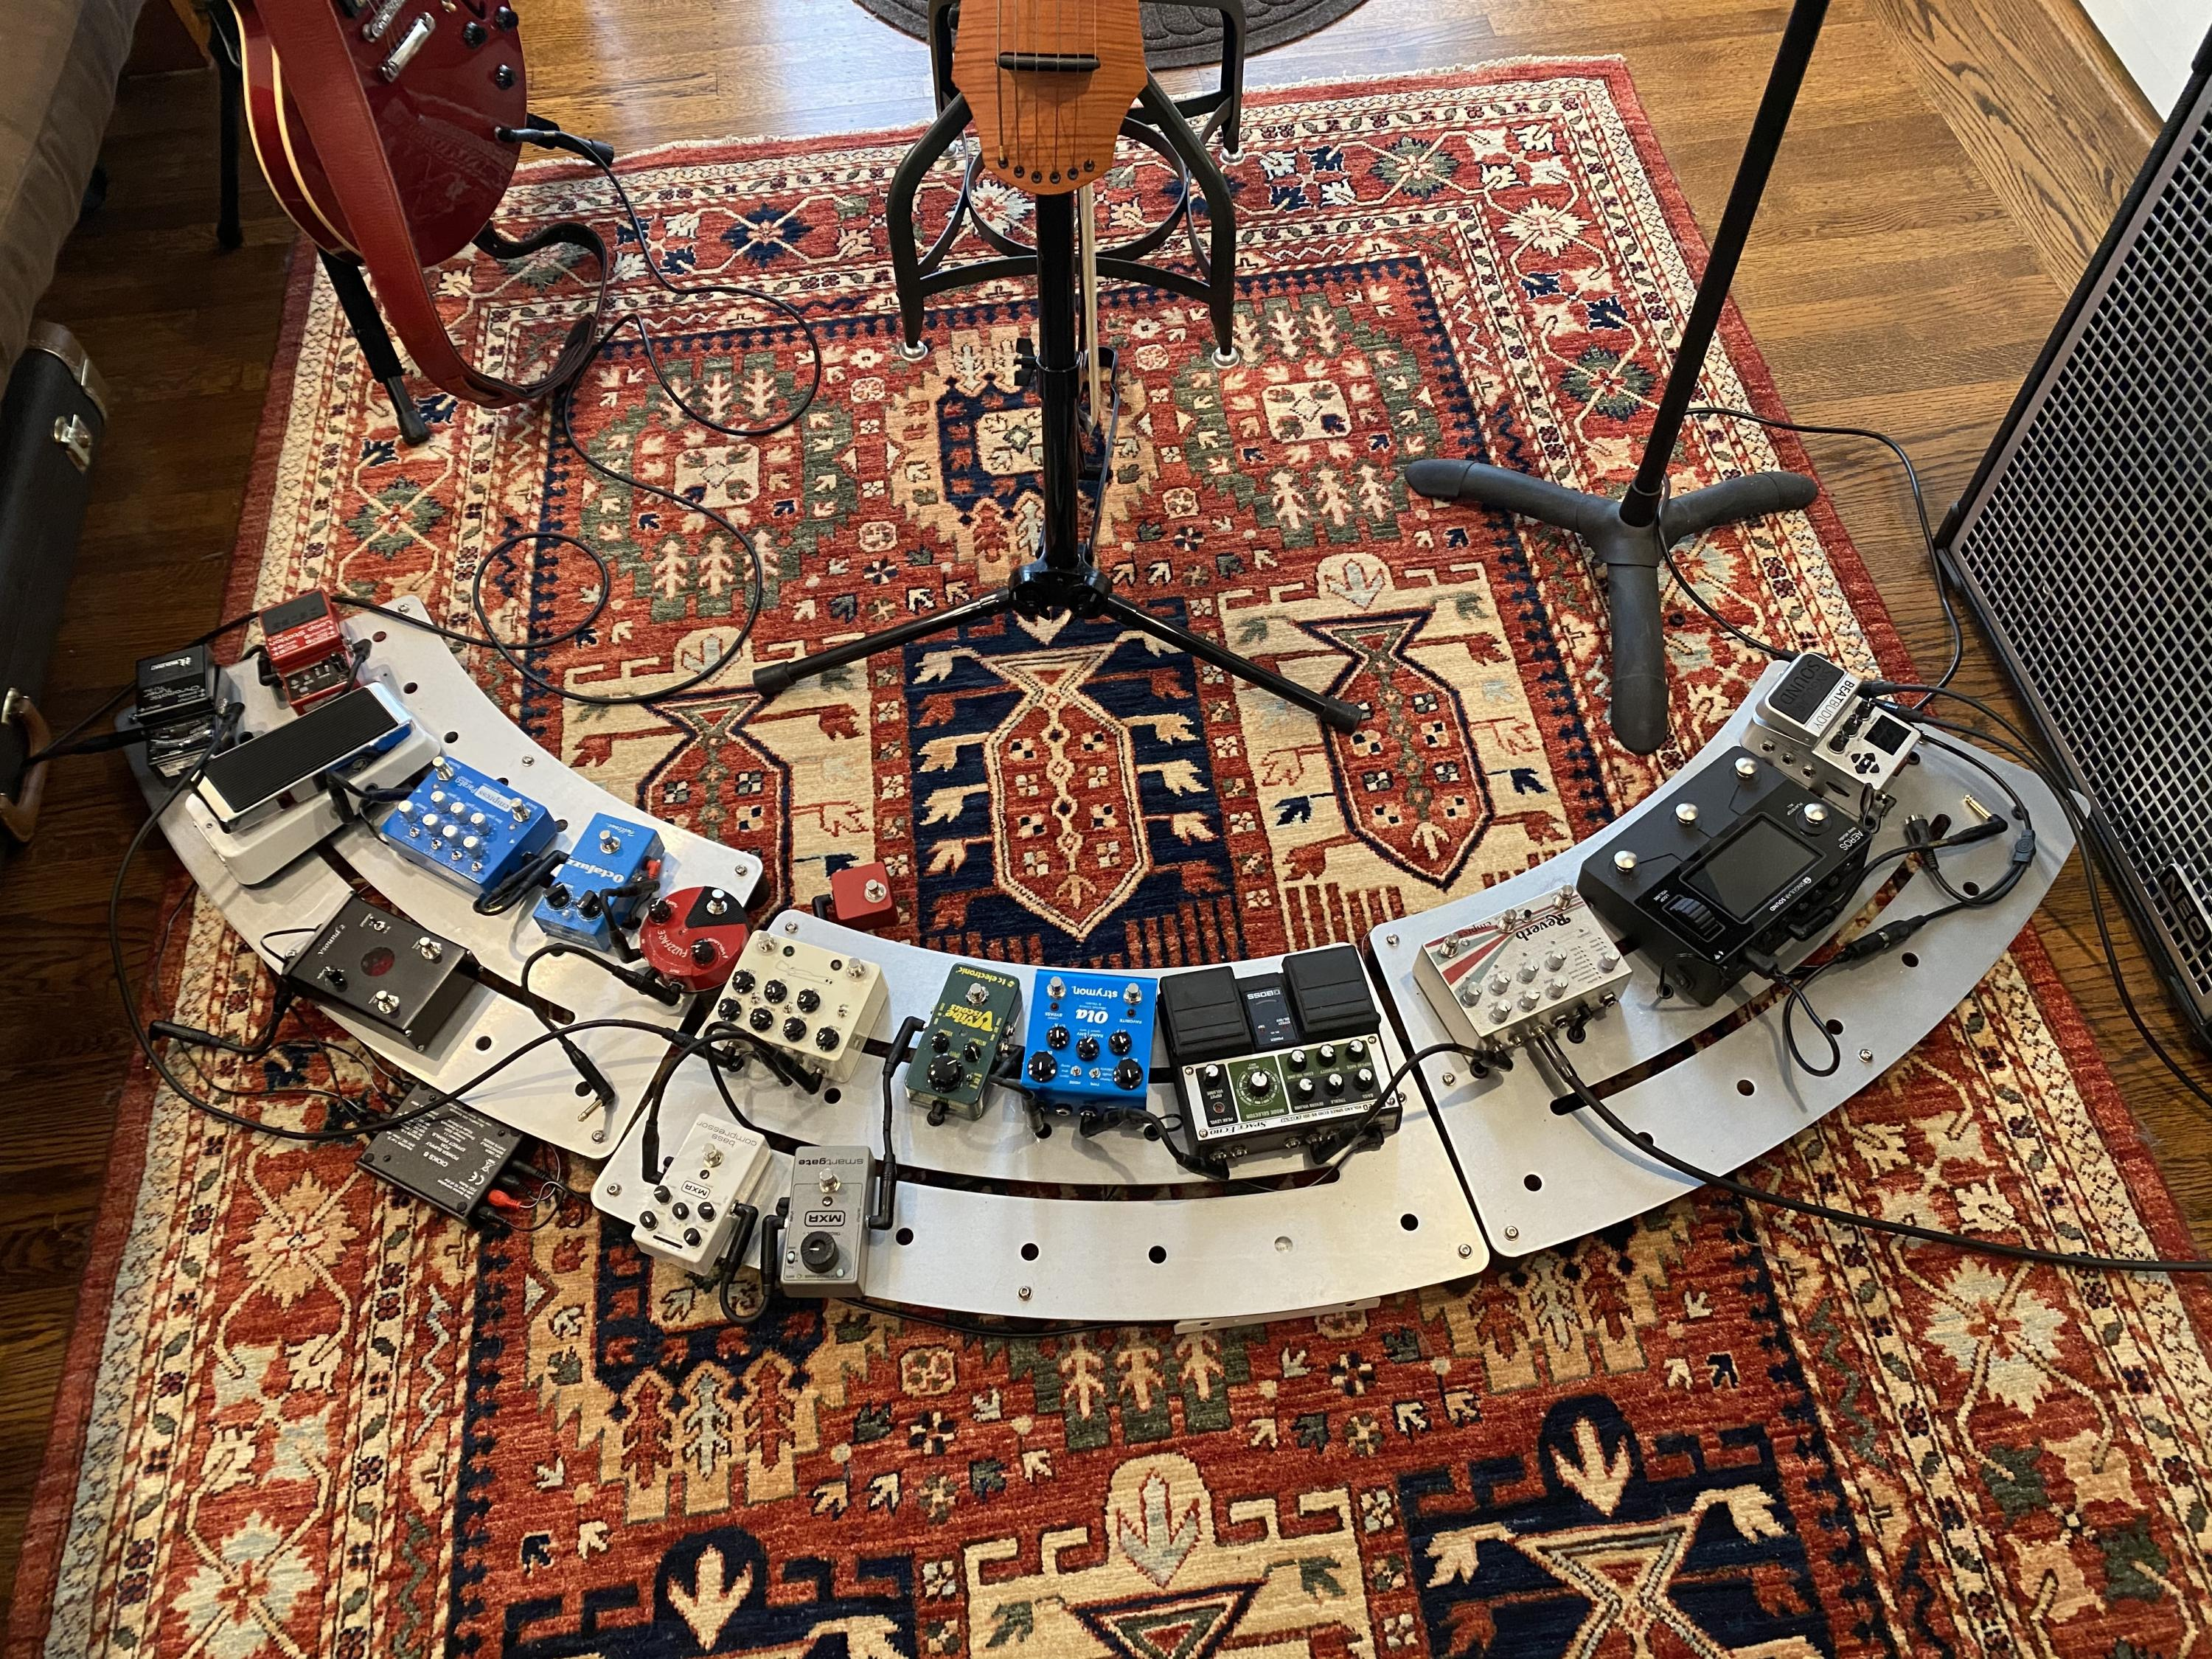 Pedals for the Jazz Guitarist?-4cee3f99-3264-4550-86ff-83d6574e1b43-jpg